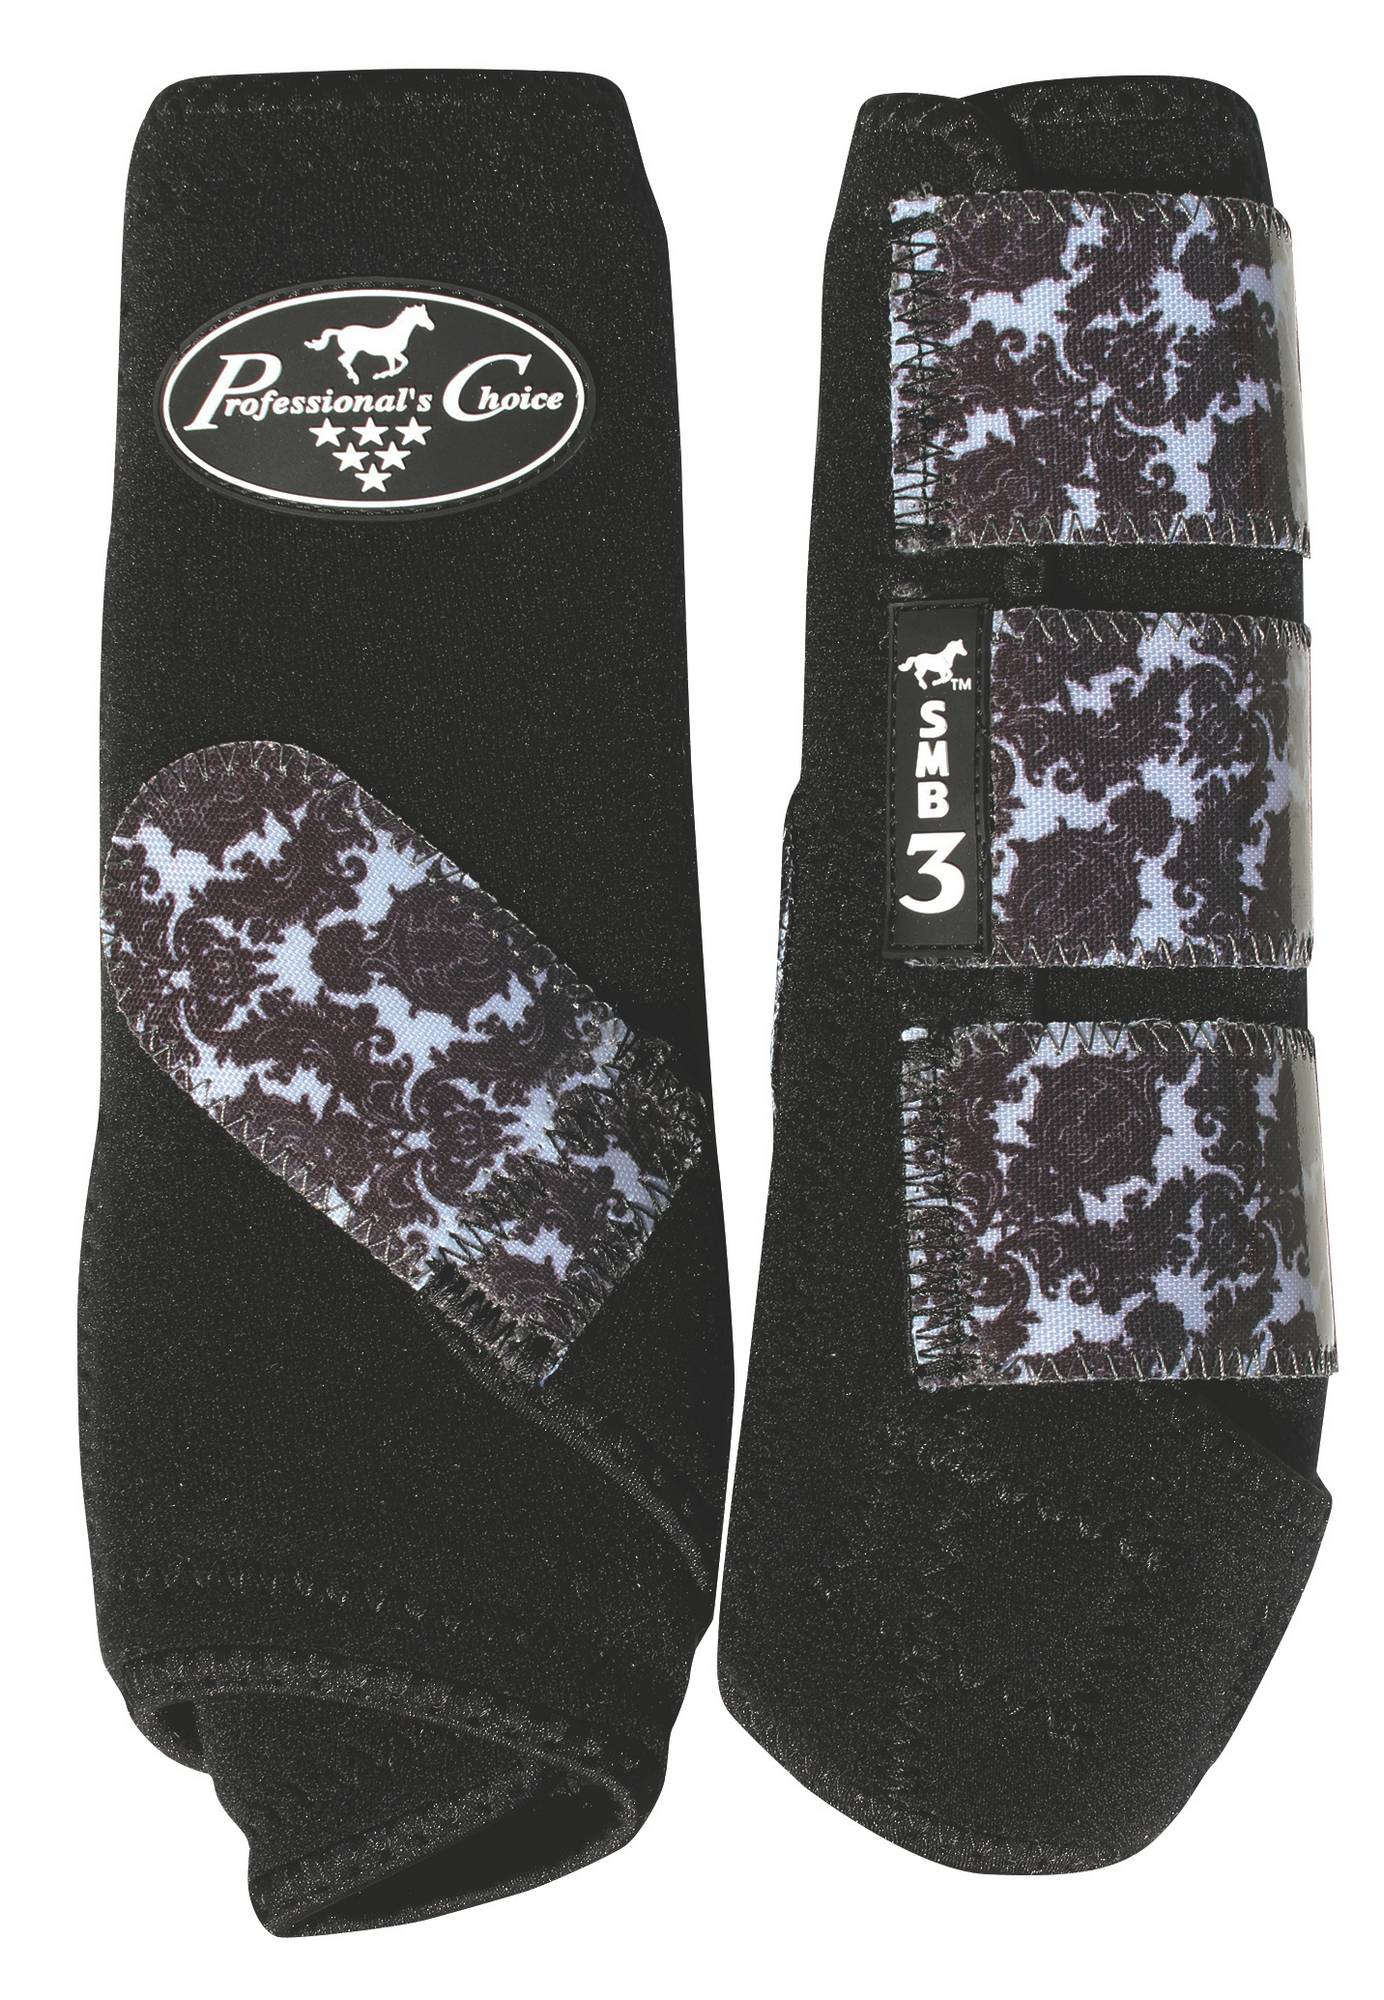 10 OFF Professionals Choice SMB 3 Sports Medicine Boot Lace Print